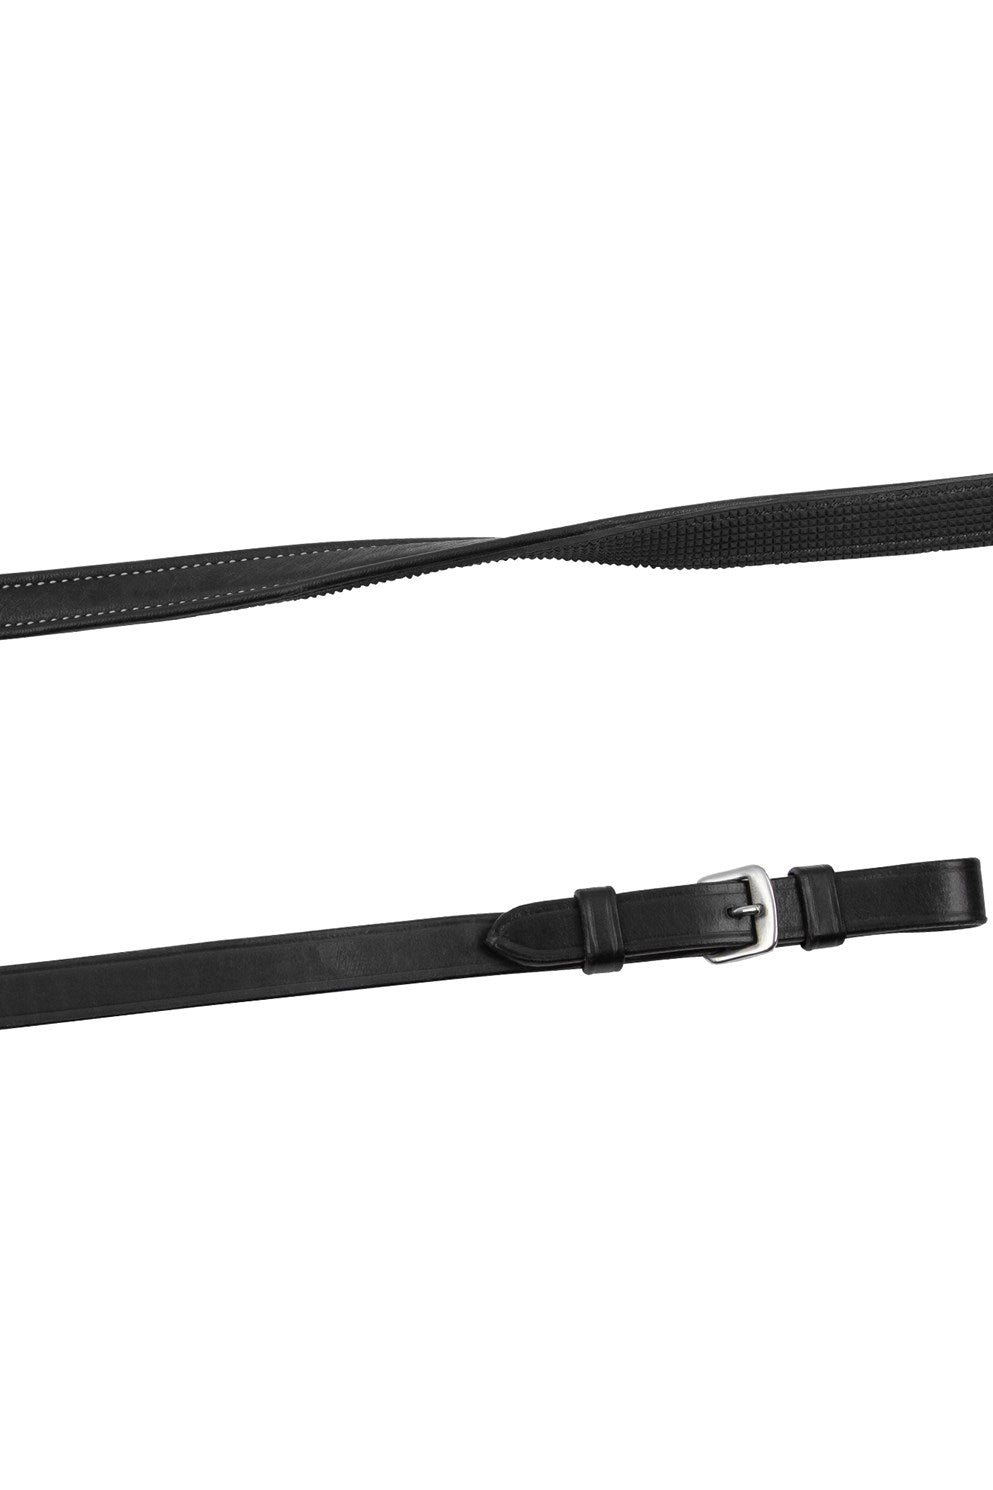 Montar Leather Rubber Reins Equissimo